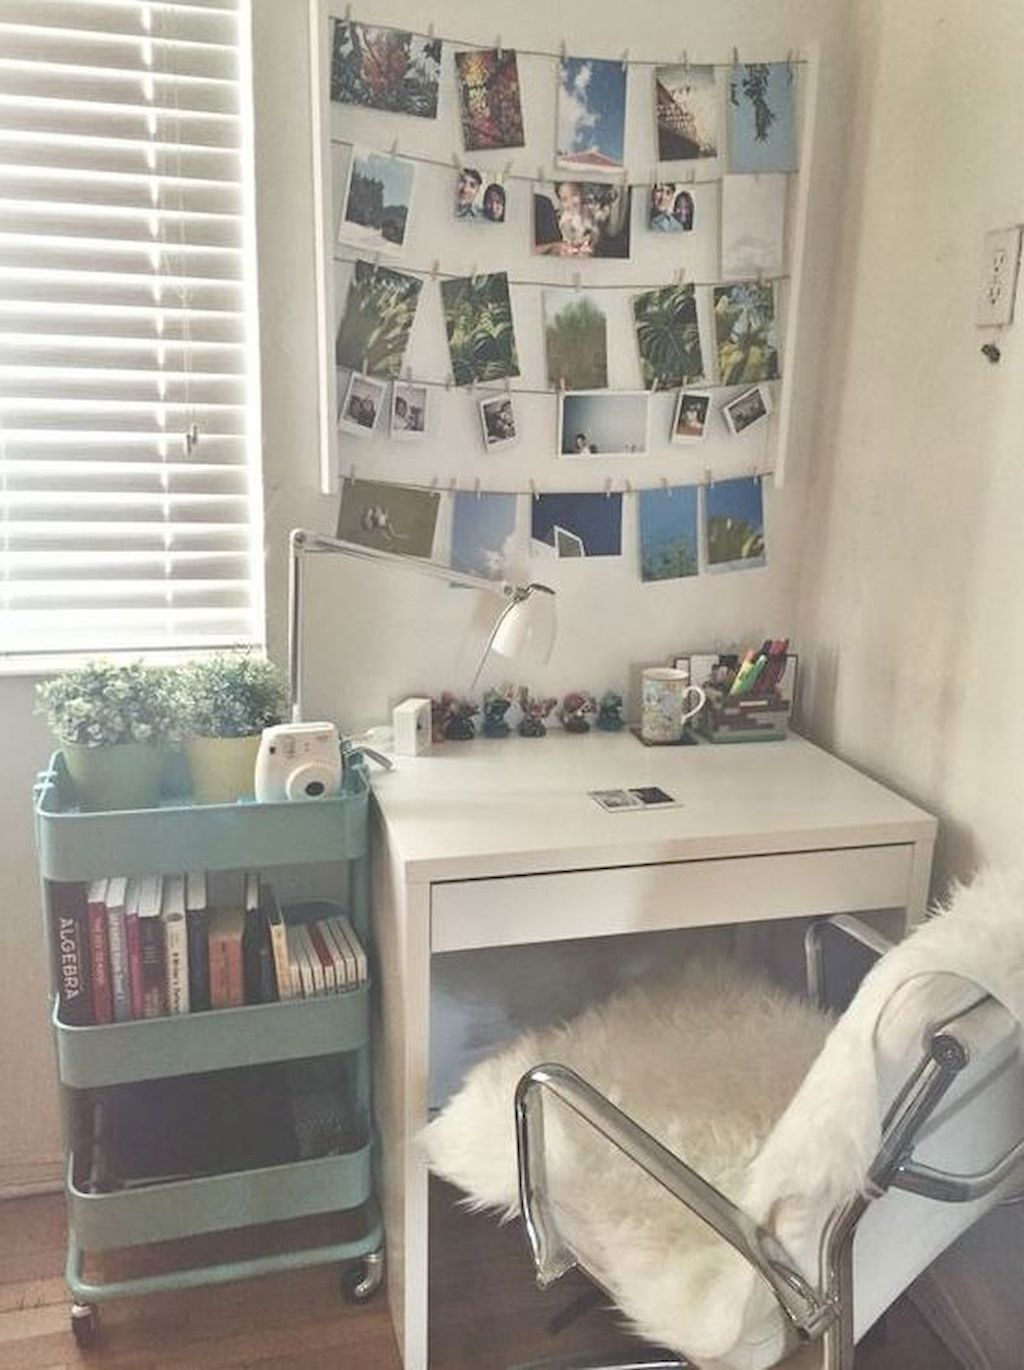 Dorm Furniture Ideas 75 Affordable Cute Dorm Room Decorating Ideas On A Budget  Room